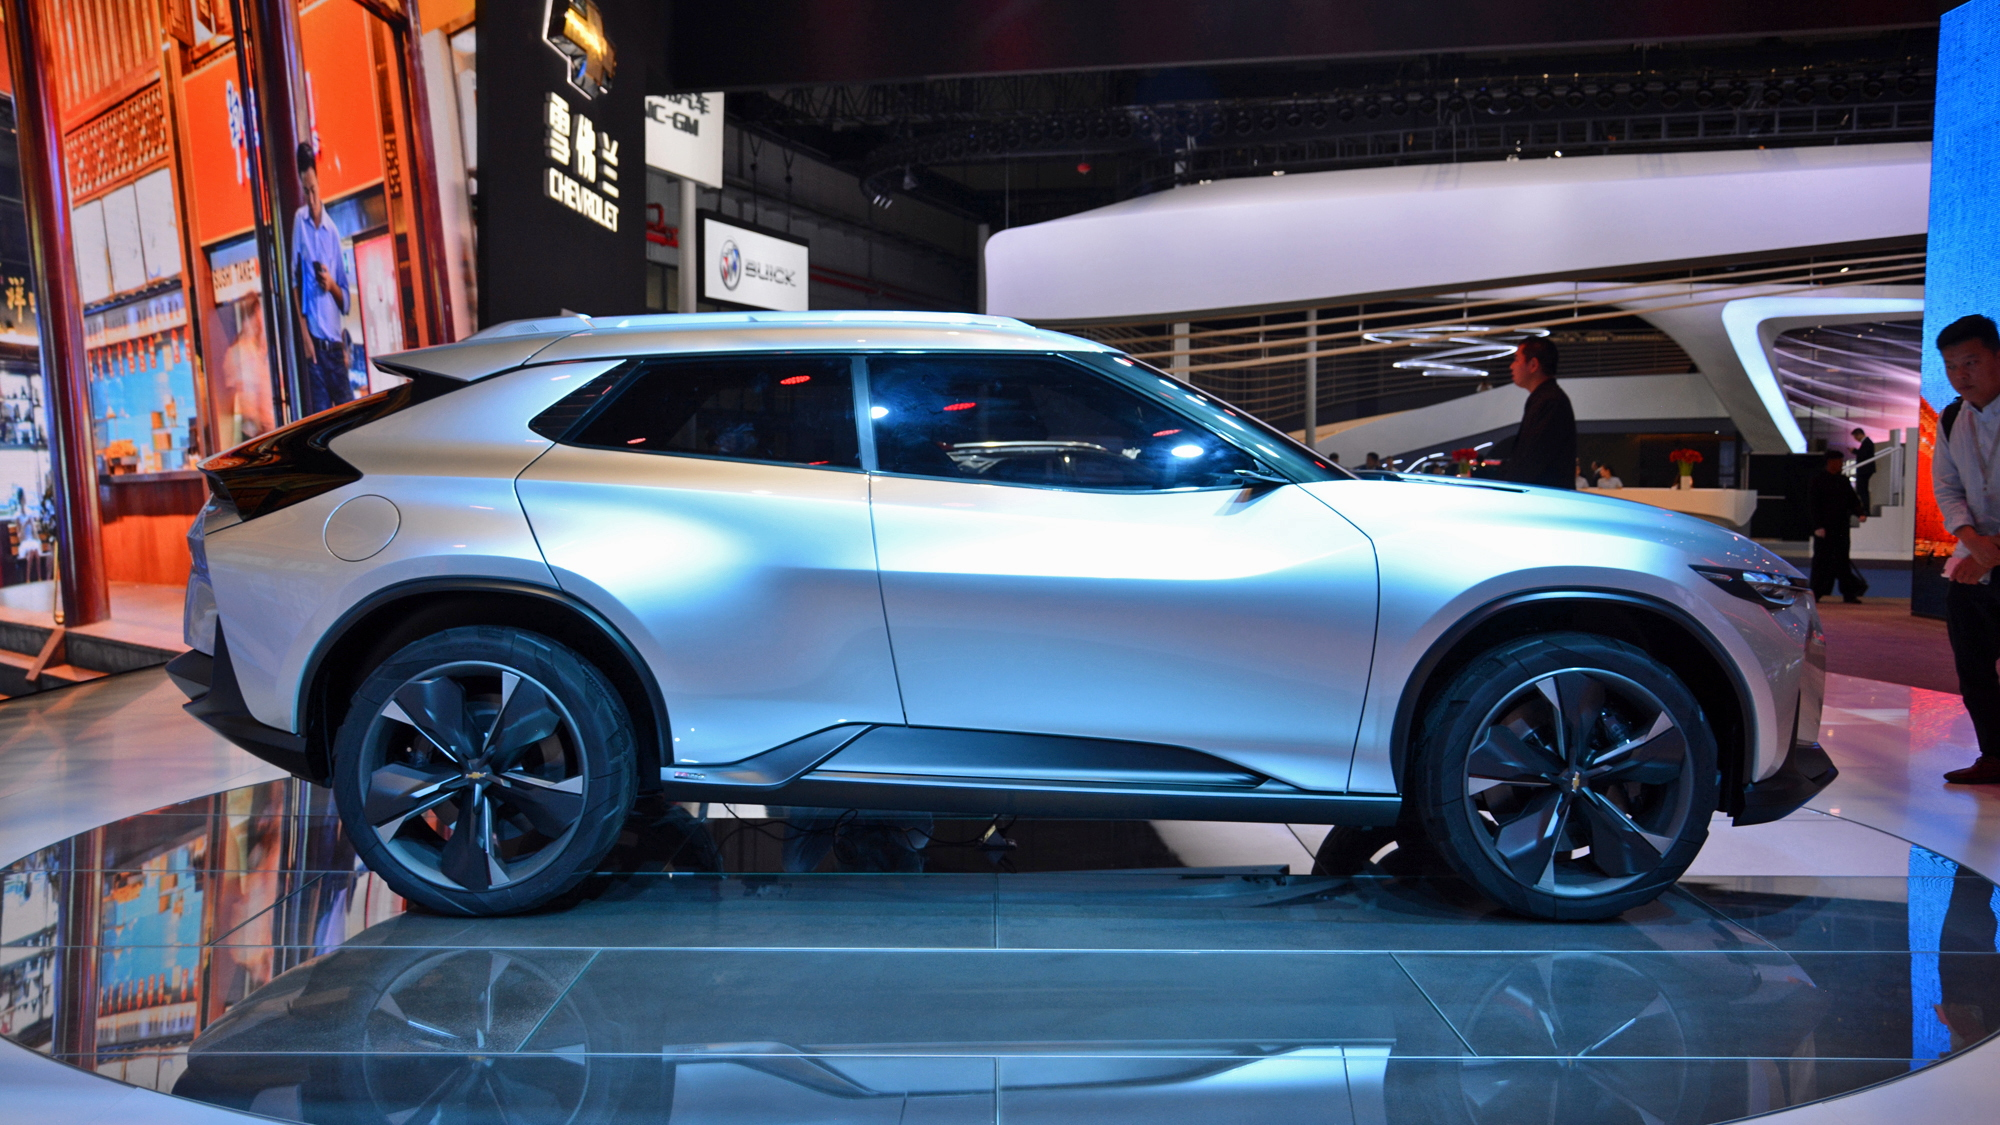 Chevrolet Fnr X Concept For Plug In Hybrid Crossover 2017 Shanghai Auto Show